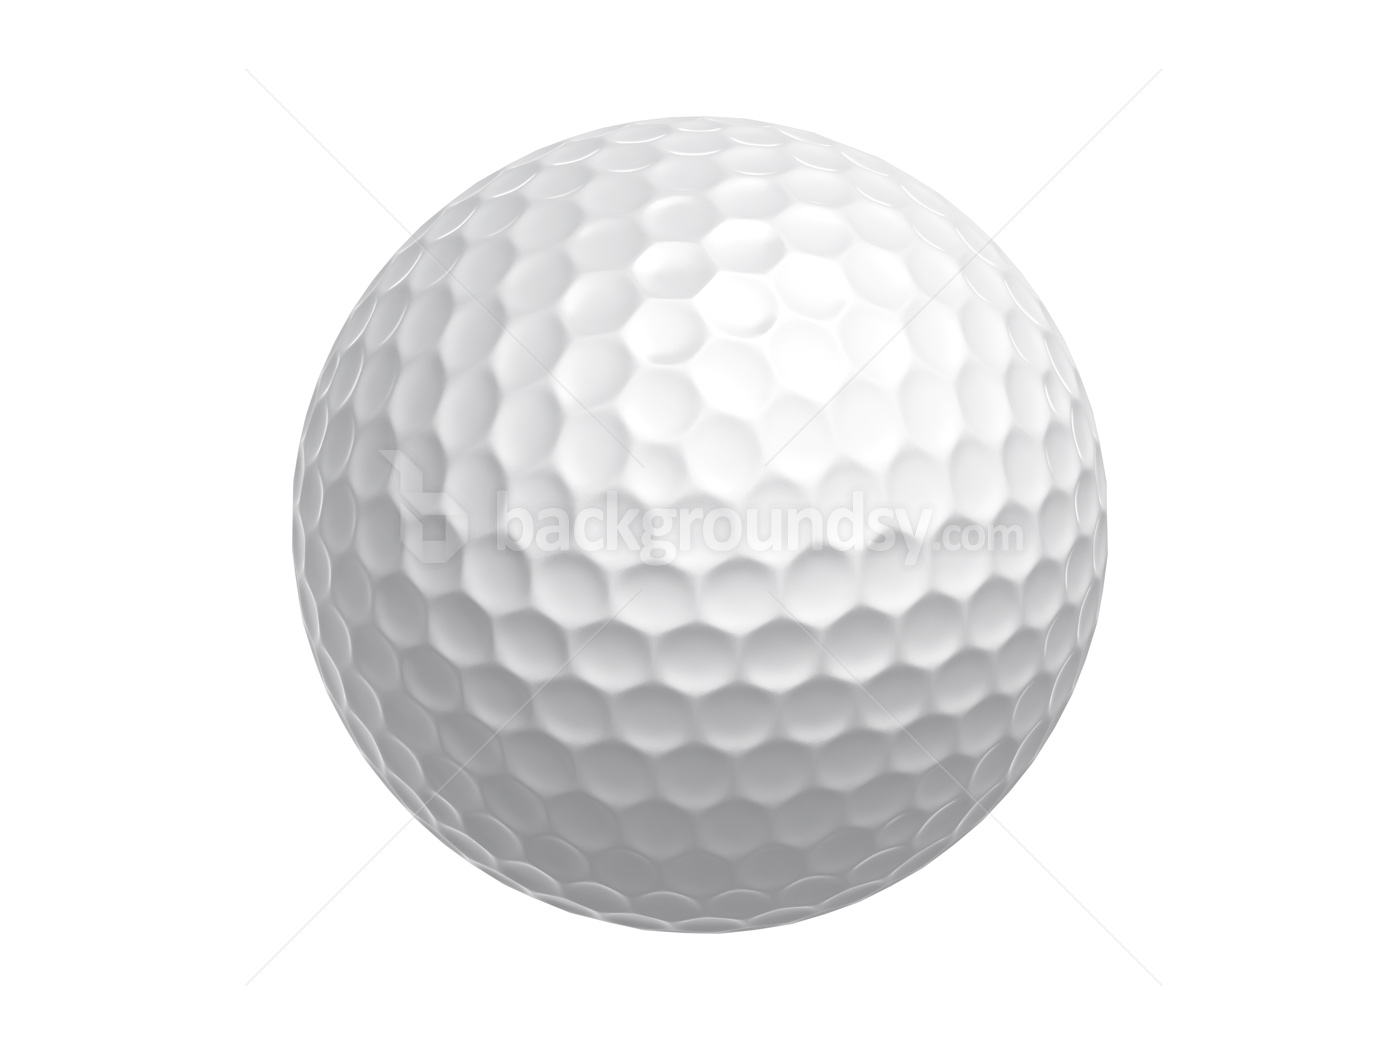 Free Golf Balls Cliparts, Download Free Clip Art, Free Clip Art on.